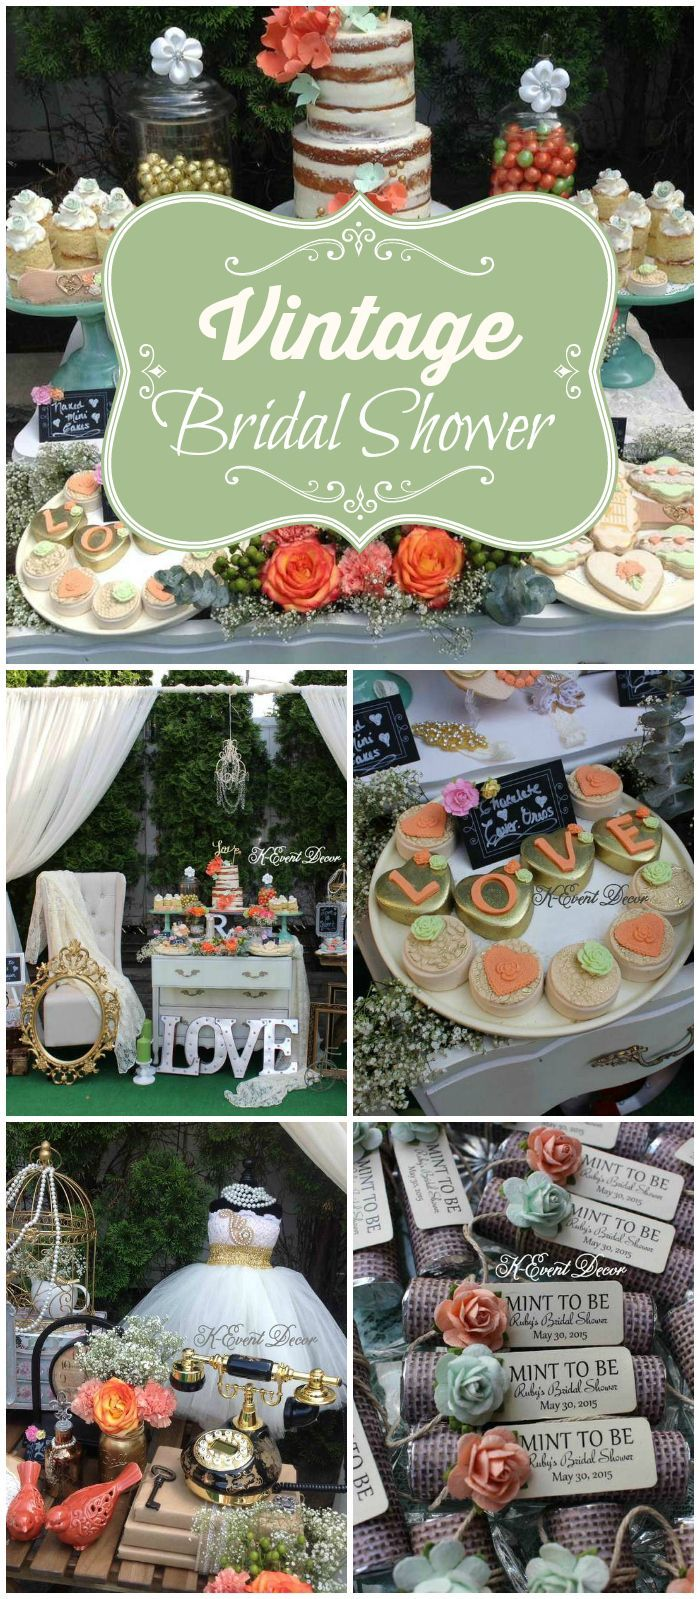 So many amazing details at this vintage bridal shower! See more party ideas at http://CatchMyParty.com!